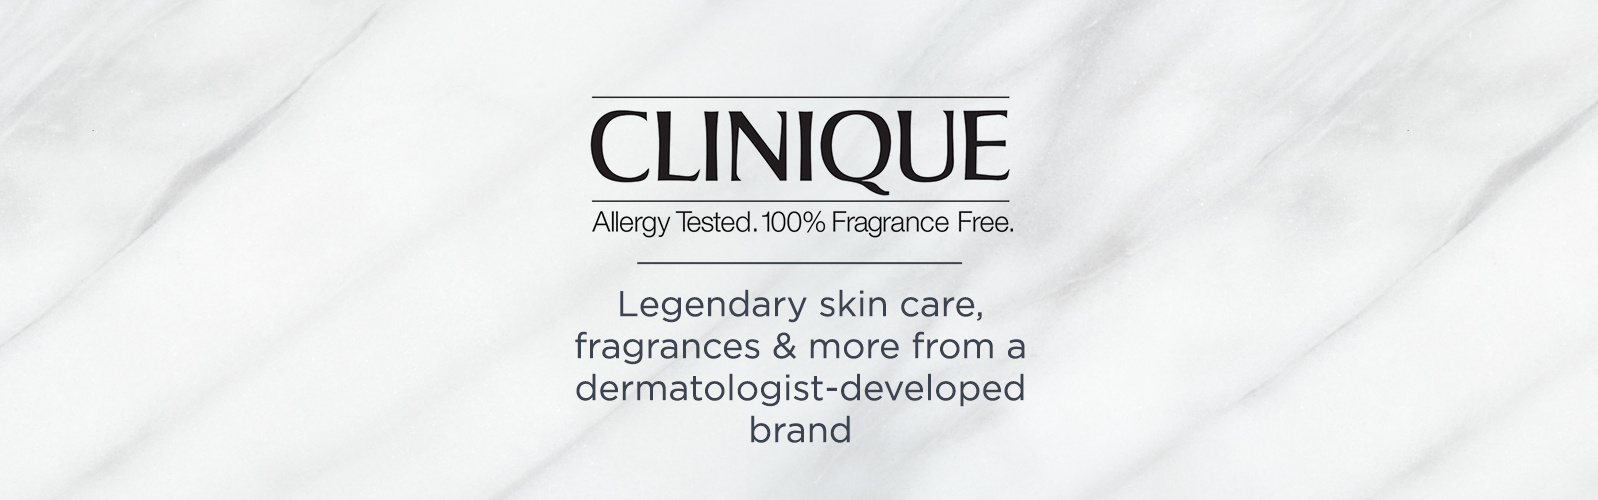 Clinique. Legendary skin care, frangrances & more from a dermatologist-developed brand